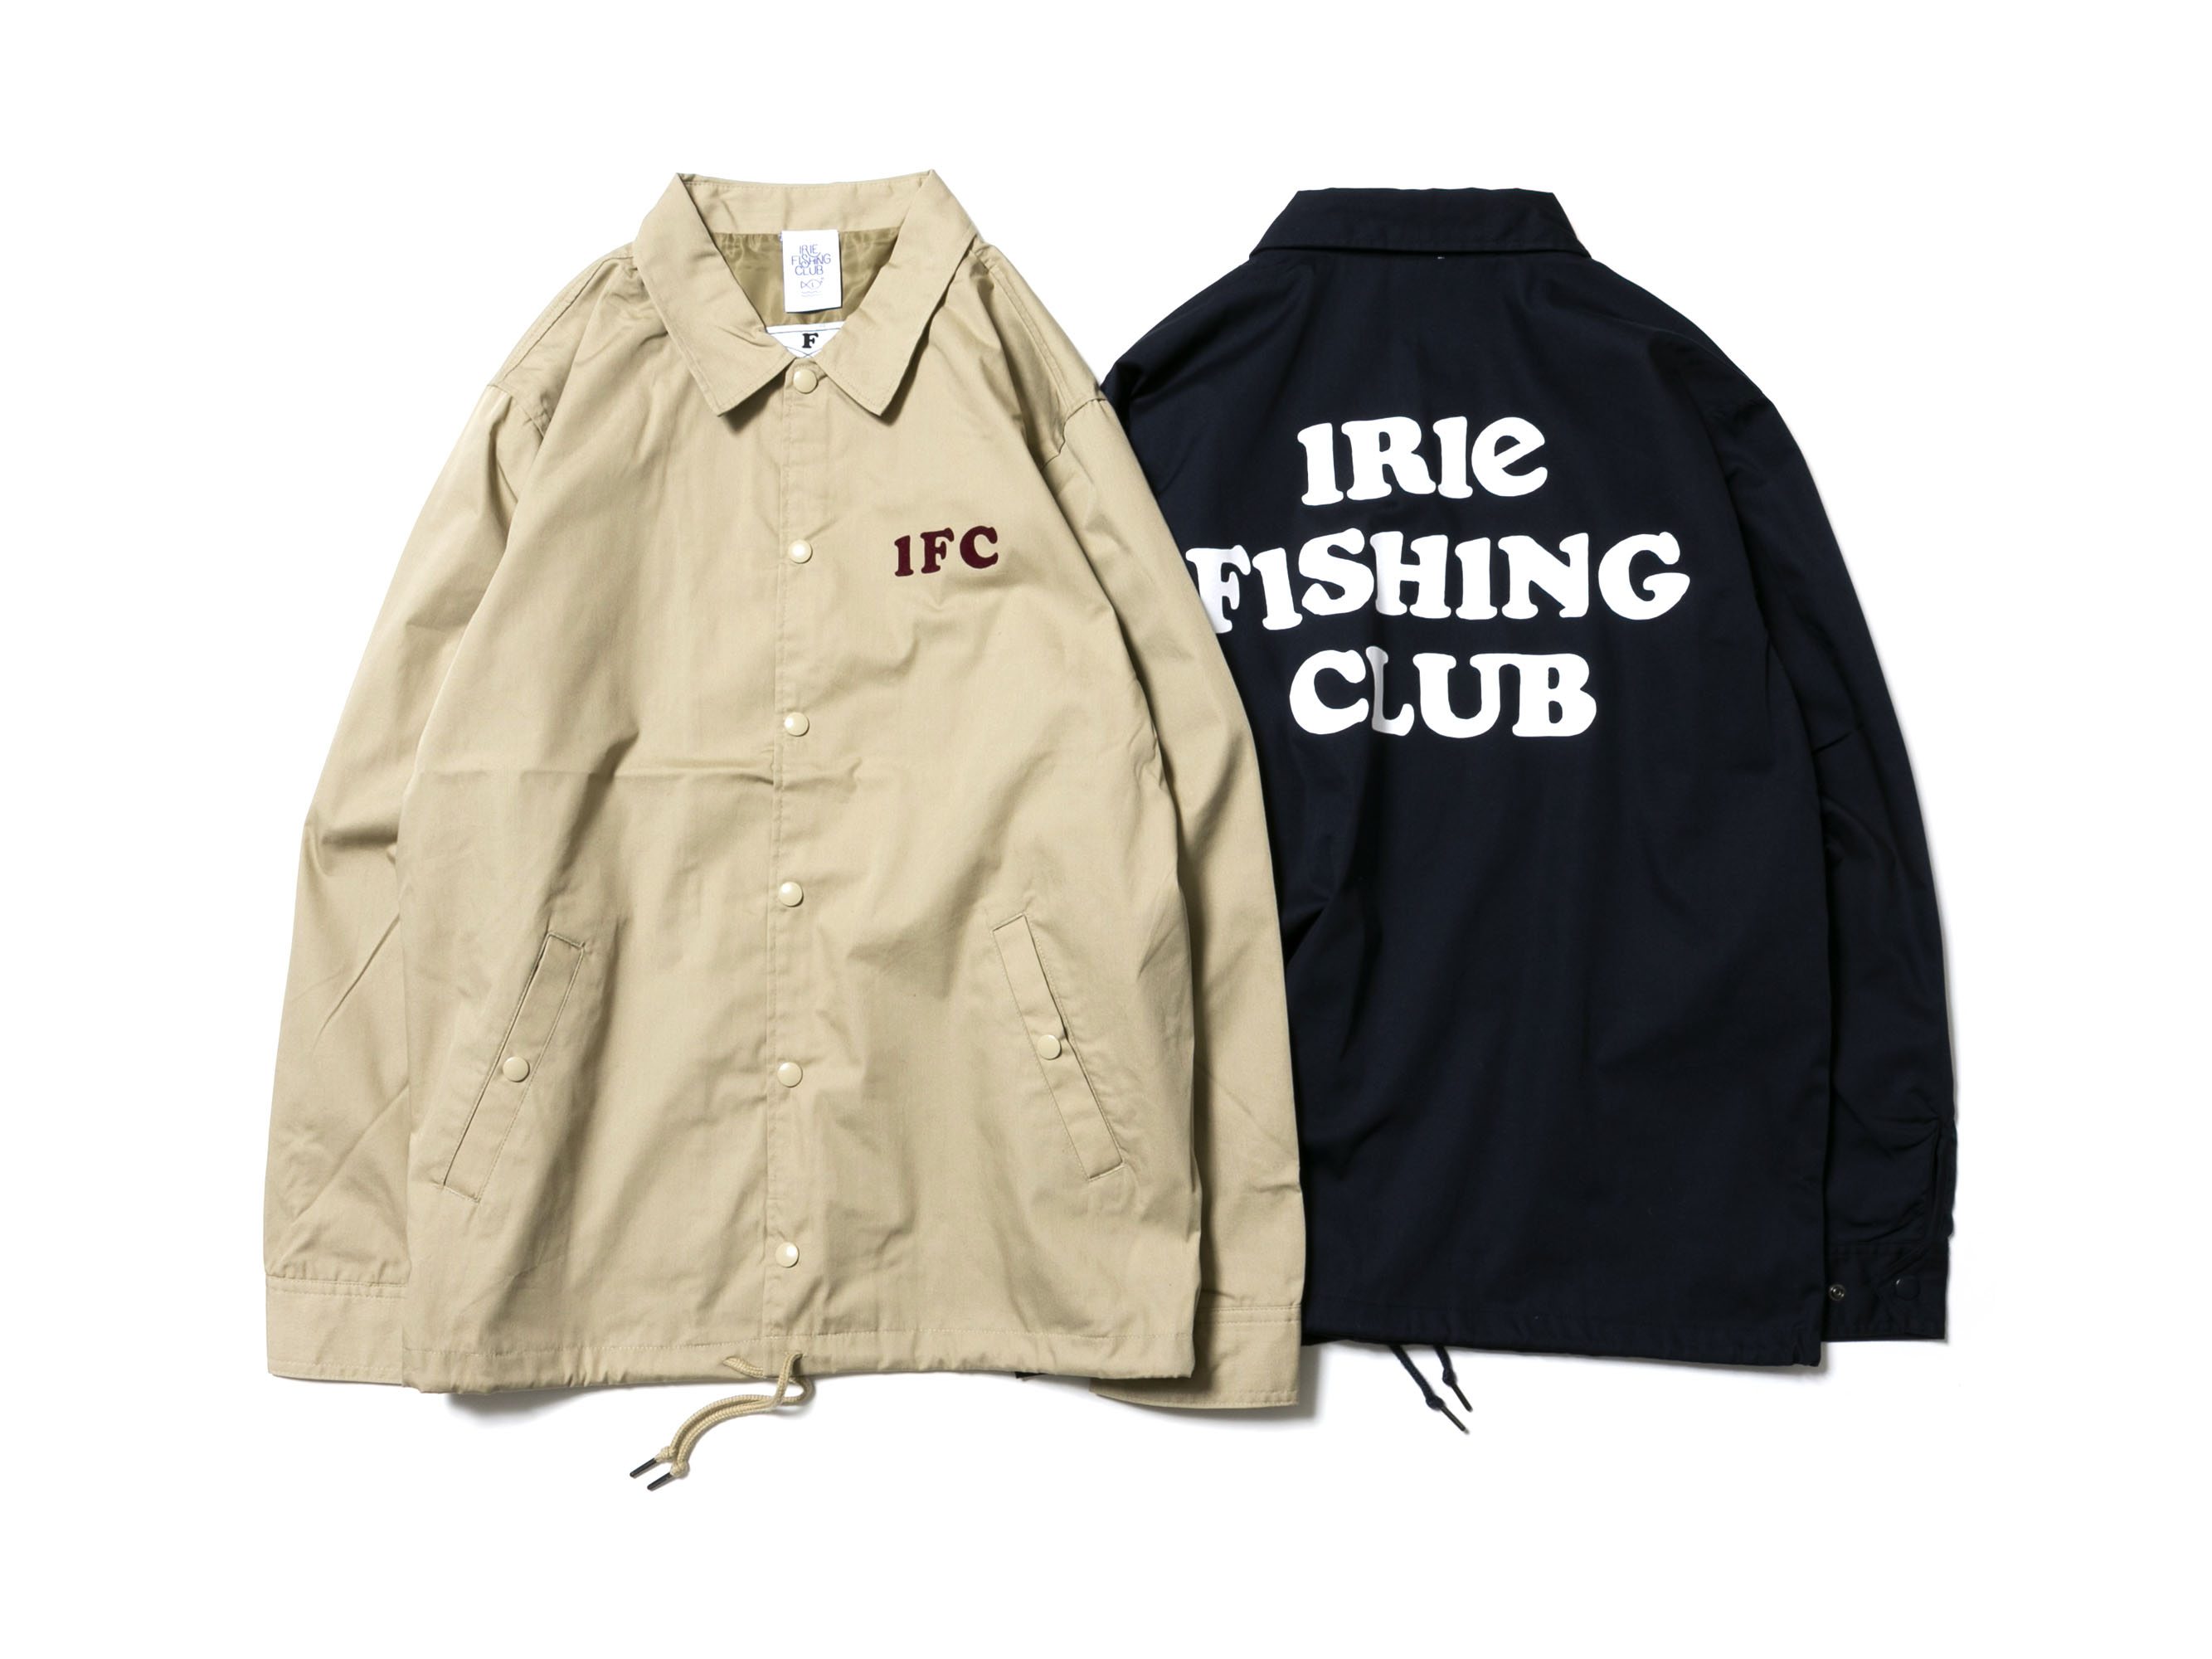 IRIE FISHING CLUB COACH JACKET -IRIE FISHING CLUB-